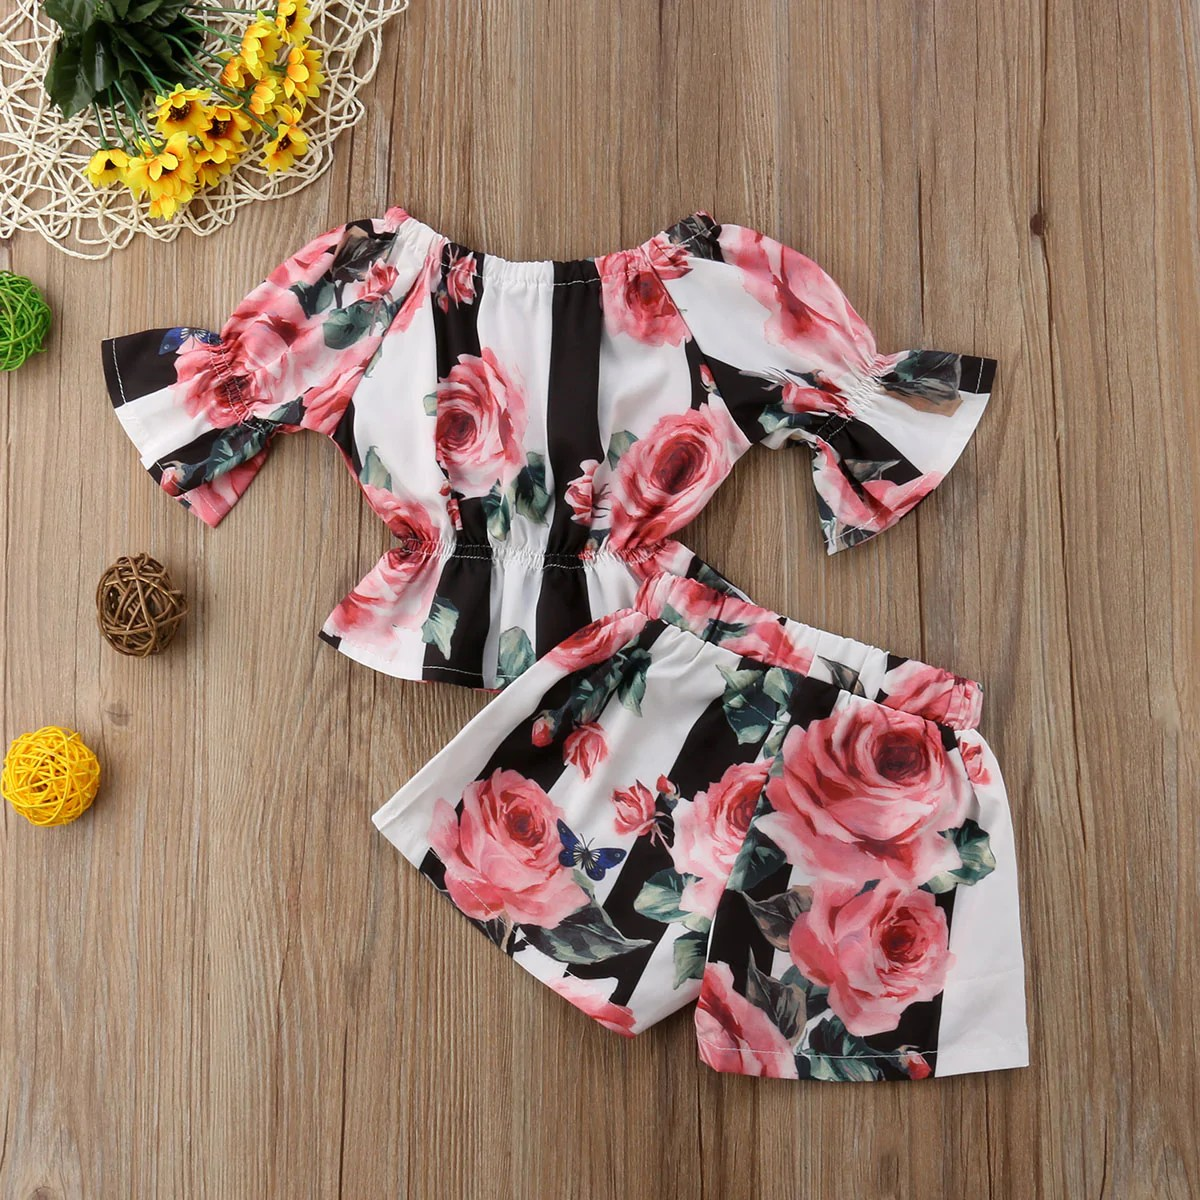 f422bb07d9 Long Flare Sleeve Floral Print Striped T Shirts Tops Shorts